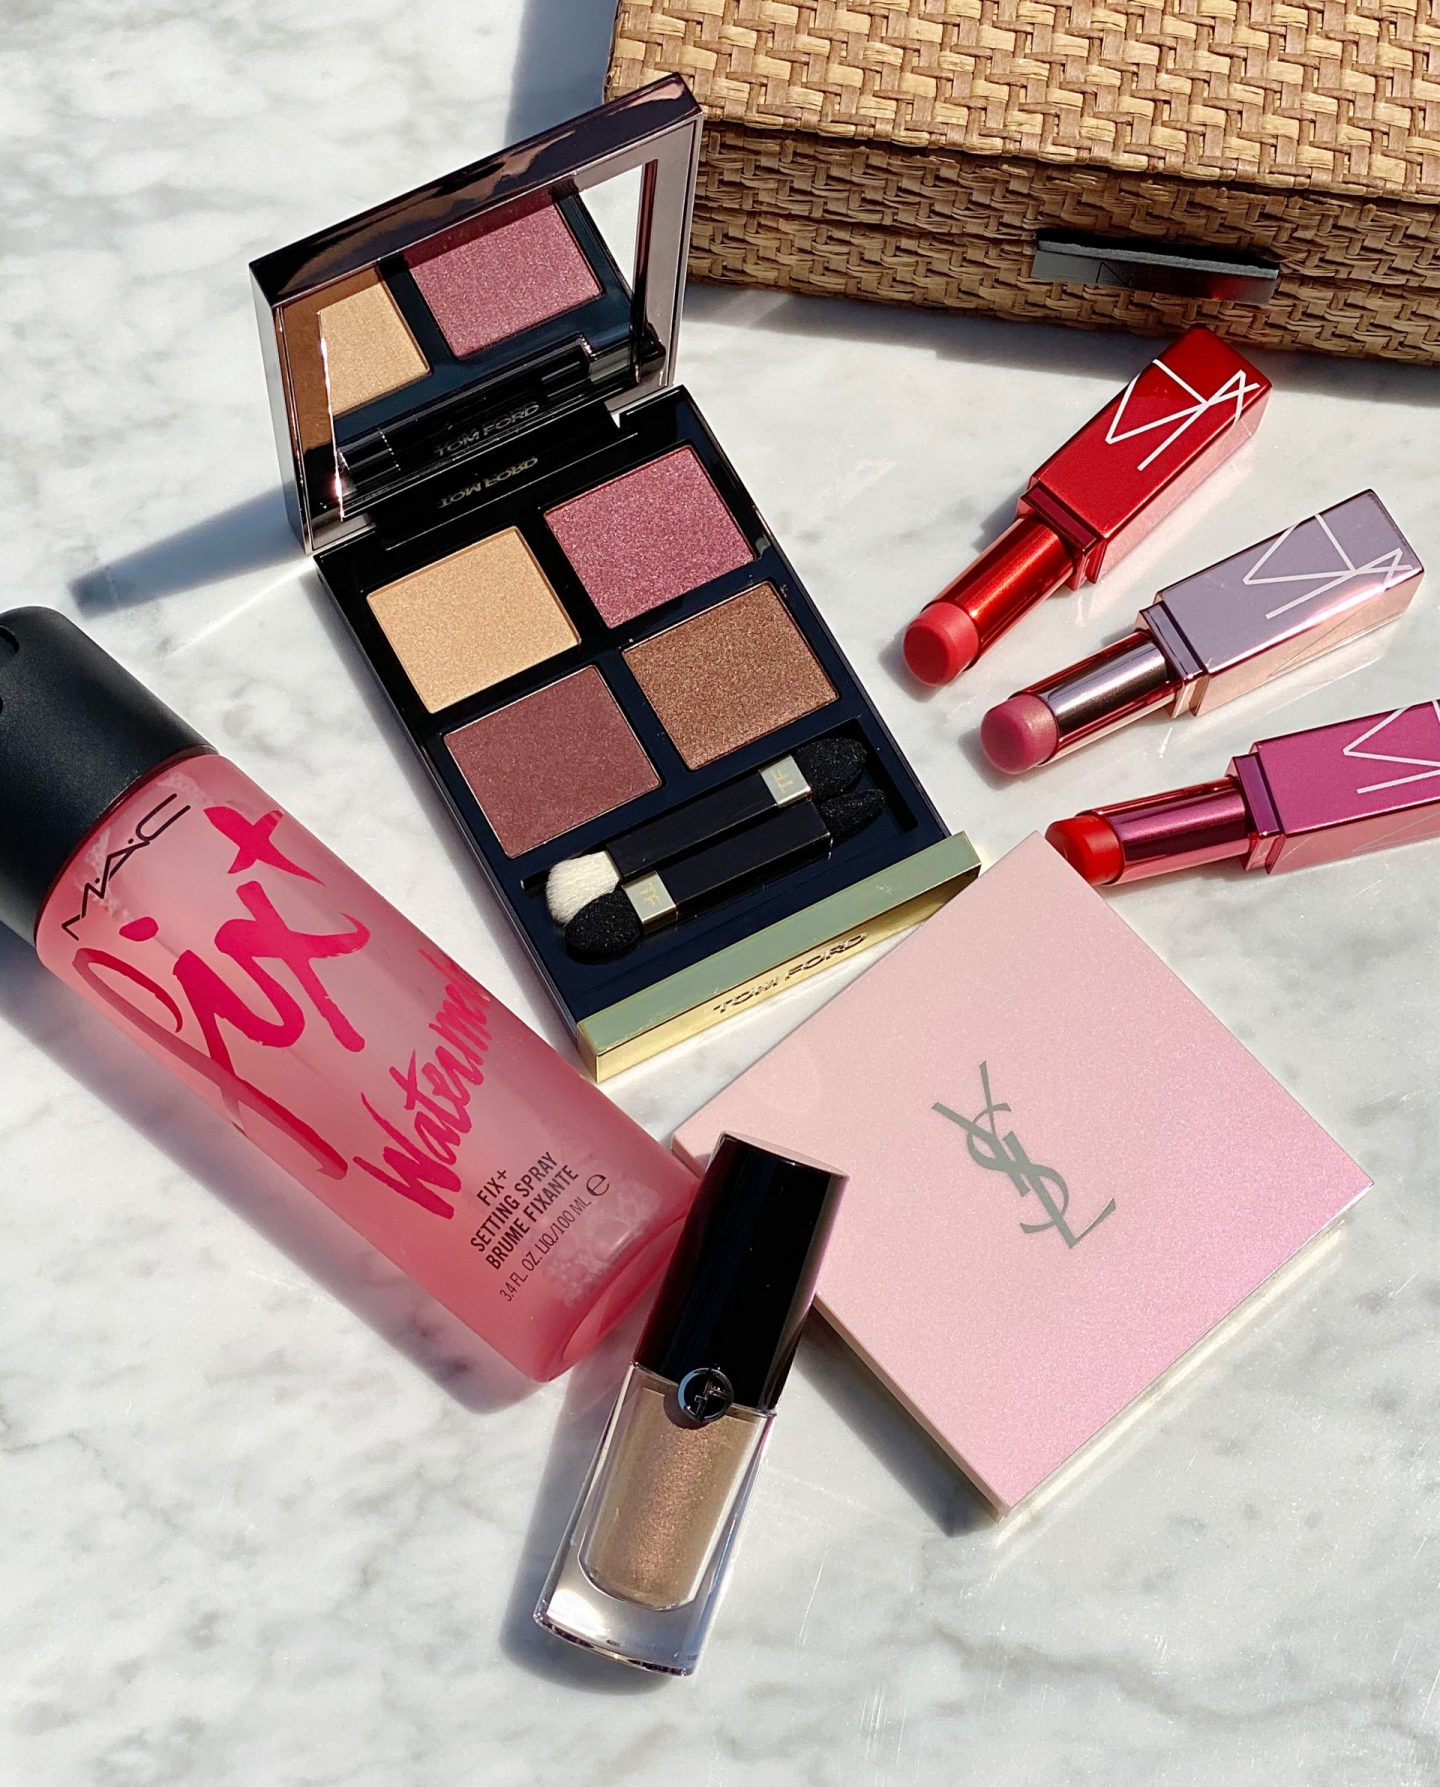 Nordstrom Anniversary Sale 2020 Beauty Haul & Recommendations